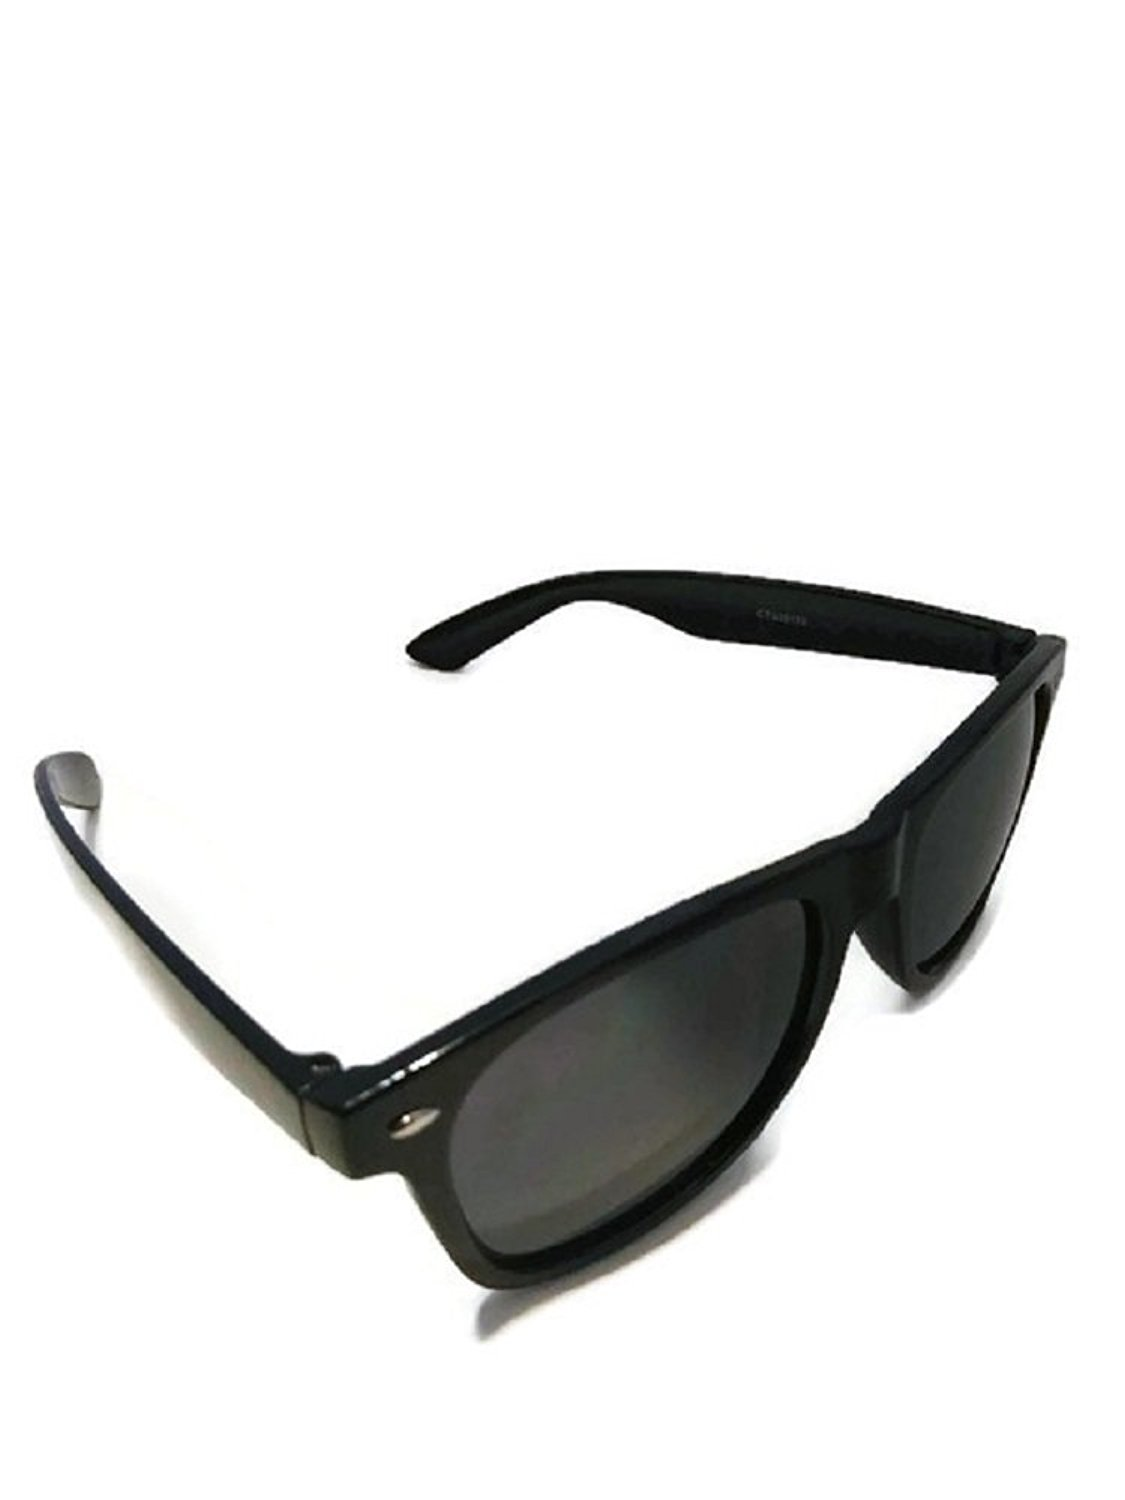 9ec01e959d29 Get Quotations · Dark Sunglasses Black Frame Black Lens Unisex 100 Percent  Uv 400 protection